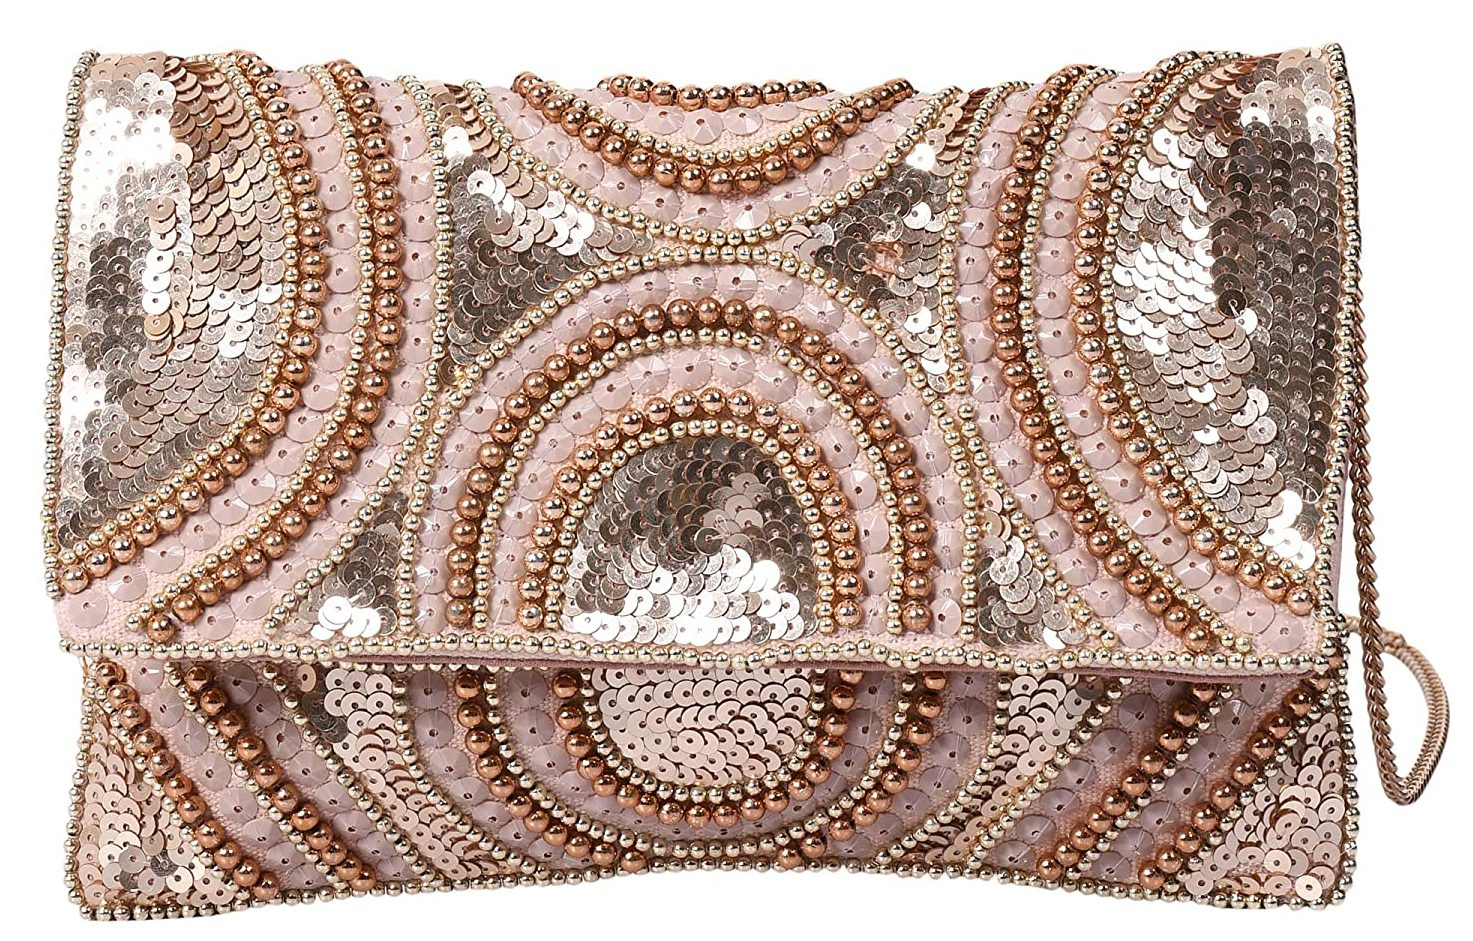 Women's Beige Color with Gold Tone embellished Beaded Clutch